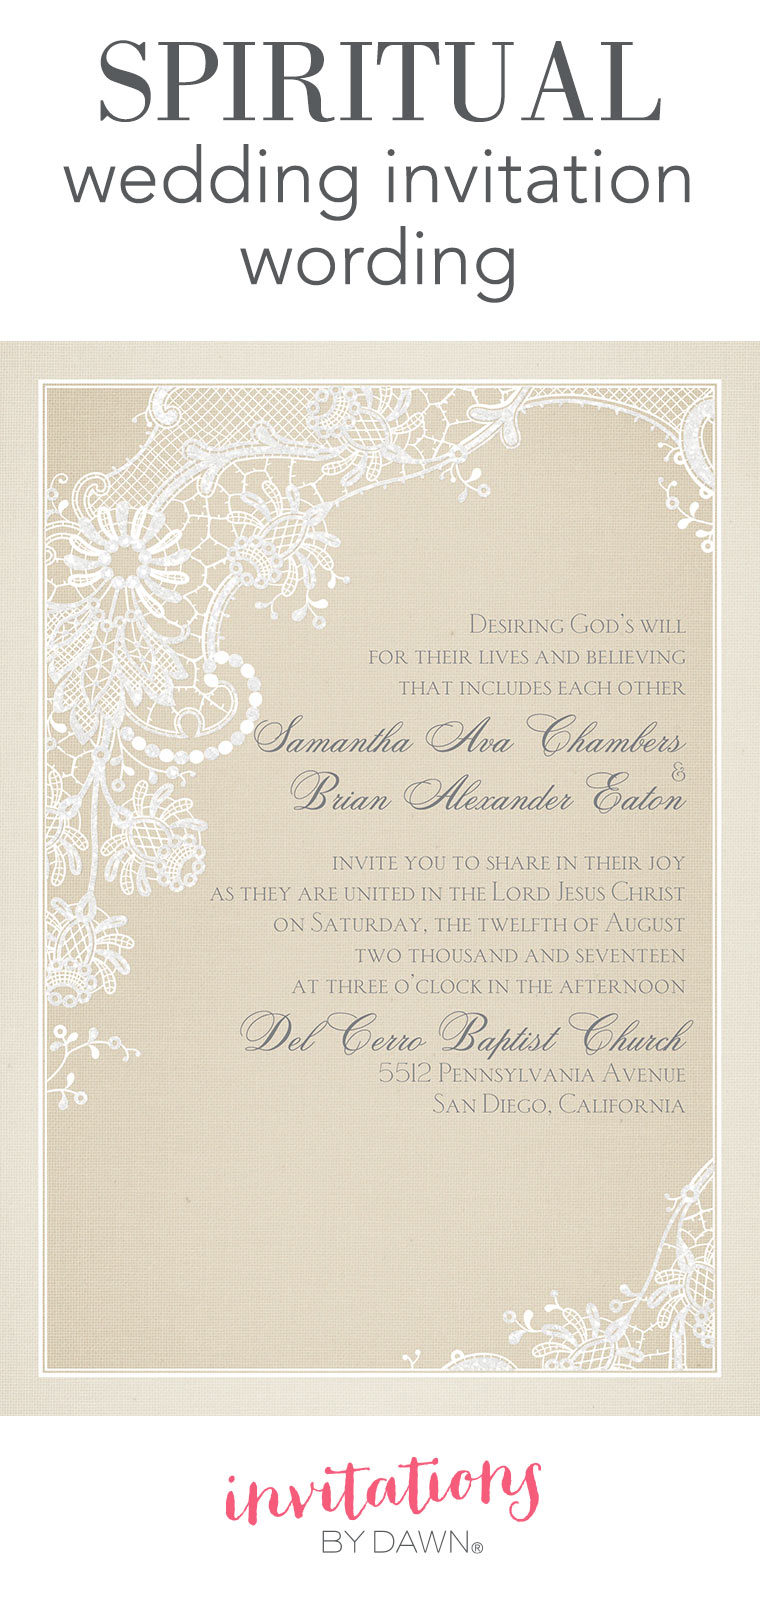 Spiritual wedding invitation wording invitations by dawn m4hsunfo